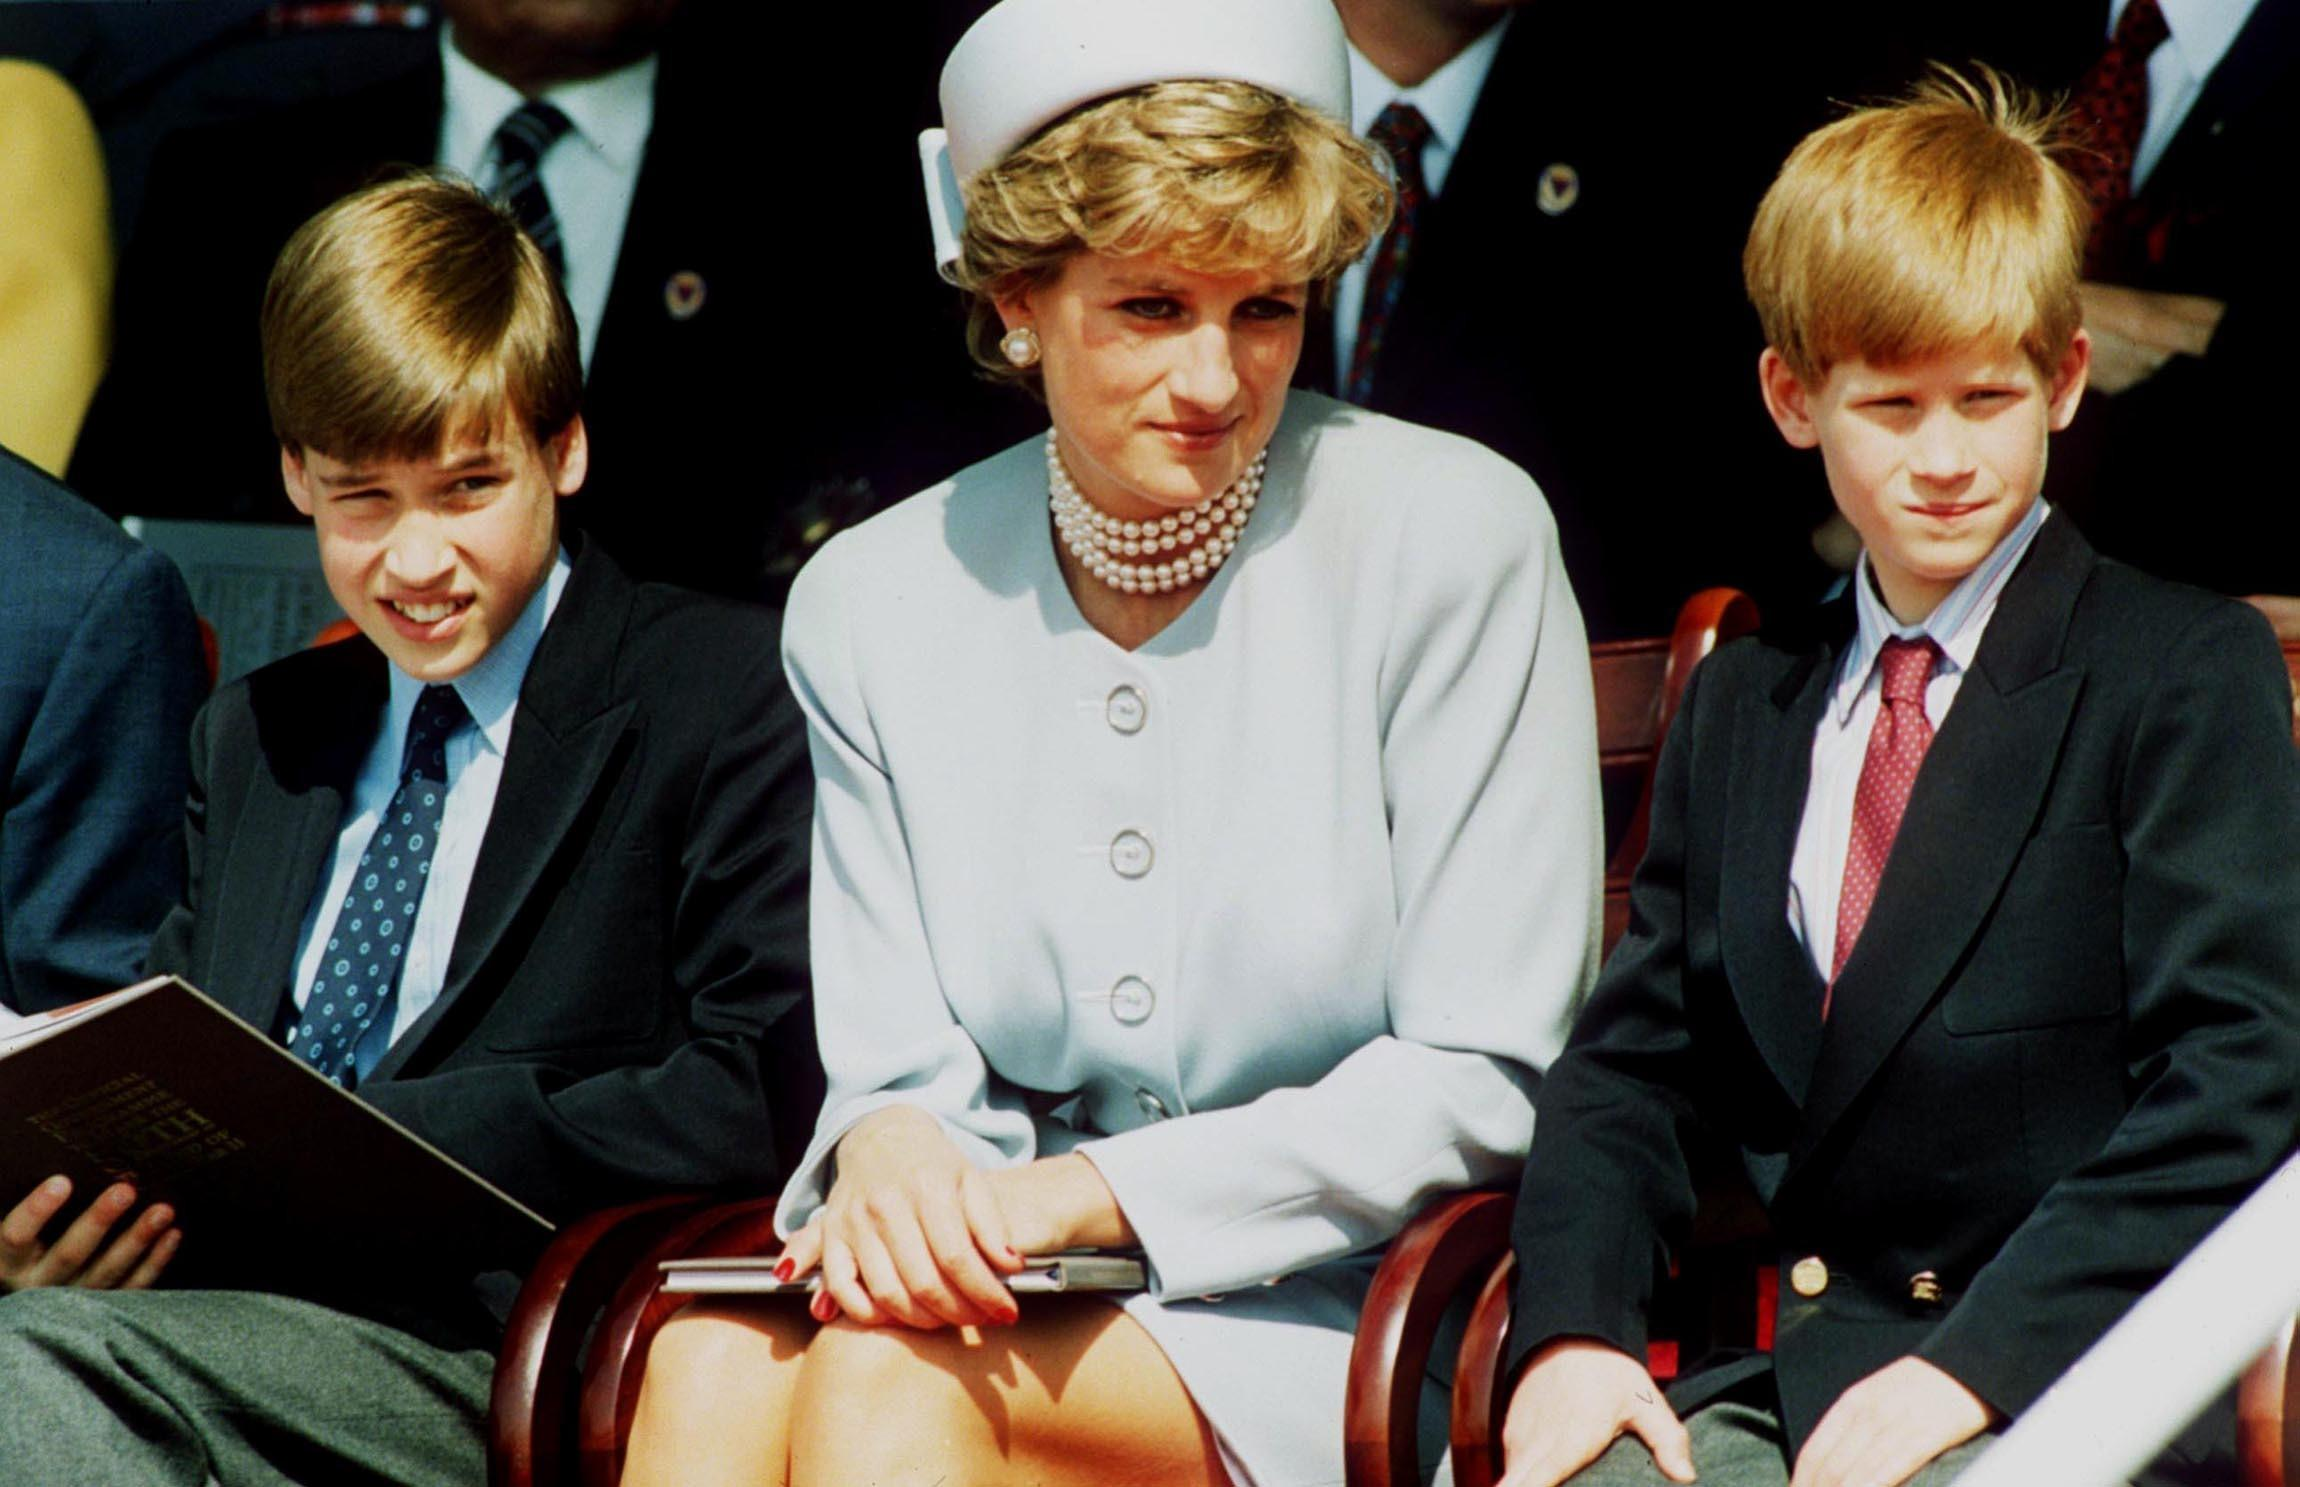 Princess Diana with her sons William and Harry in 1995.